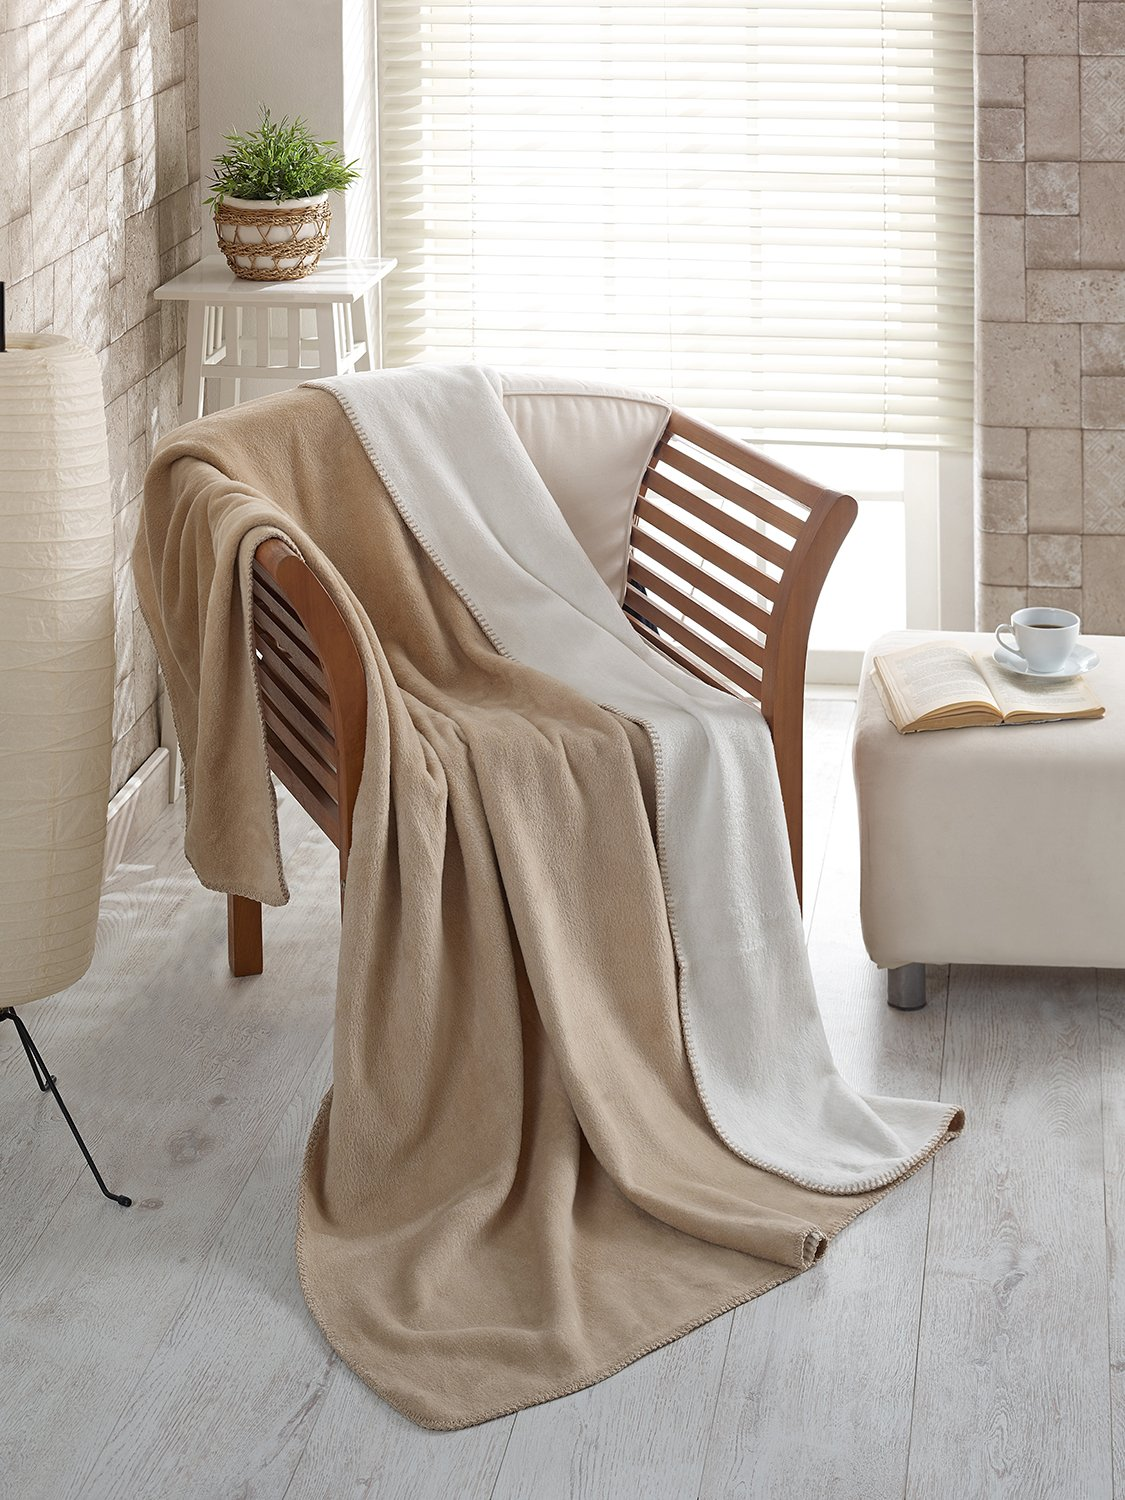 Ottomanson Bed Blankets, Bedspread, Plush Cotton Throw, Soft Cotton Cozy Fleece Blanket, 50'' L x 65'' W, Beige and Ivory Reversible